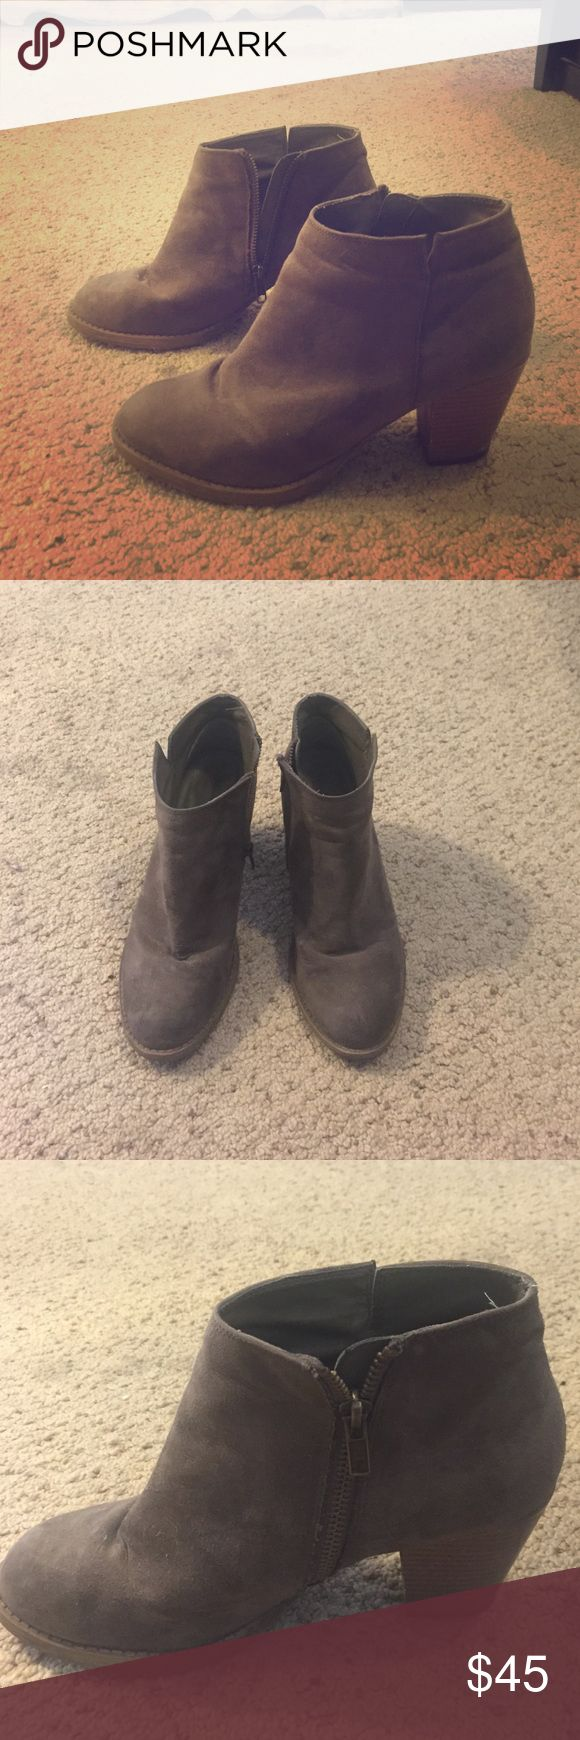 "Gabriella Rocha Grey booties ! Gabriella Rocha. Zip up from the side. 2"" heel. Great for everyday wear. Look good with dresses, jeans, skirts, shorts! A little worn and stiff but still great. Gabriella Rocha Shoes Ankle Boots & Booties"